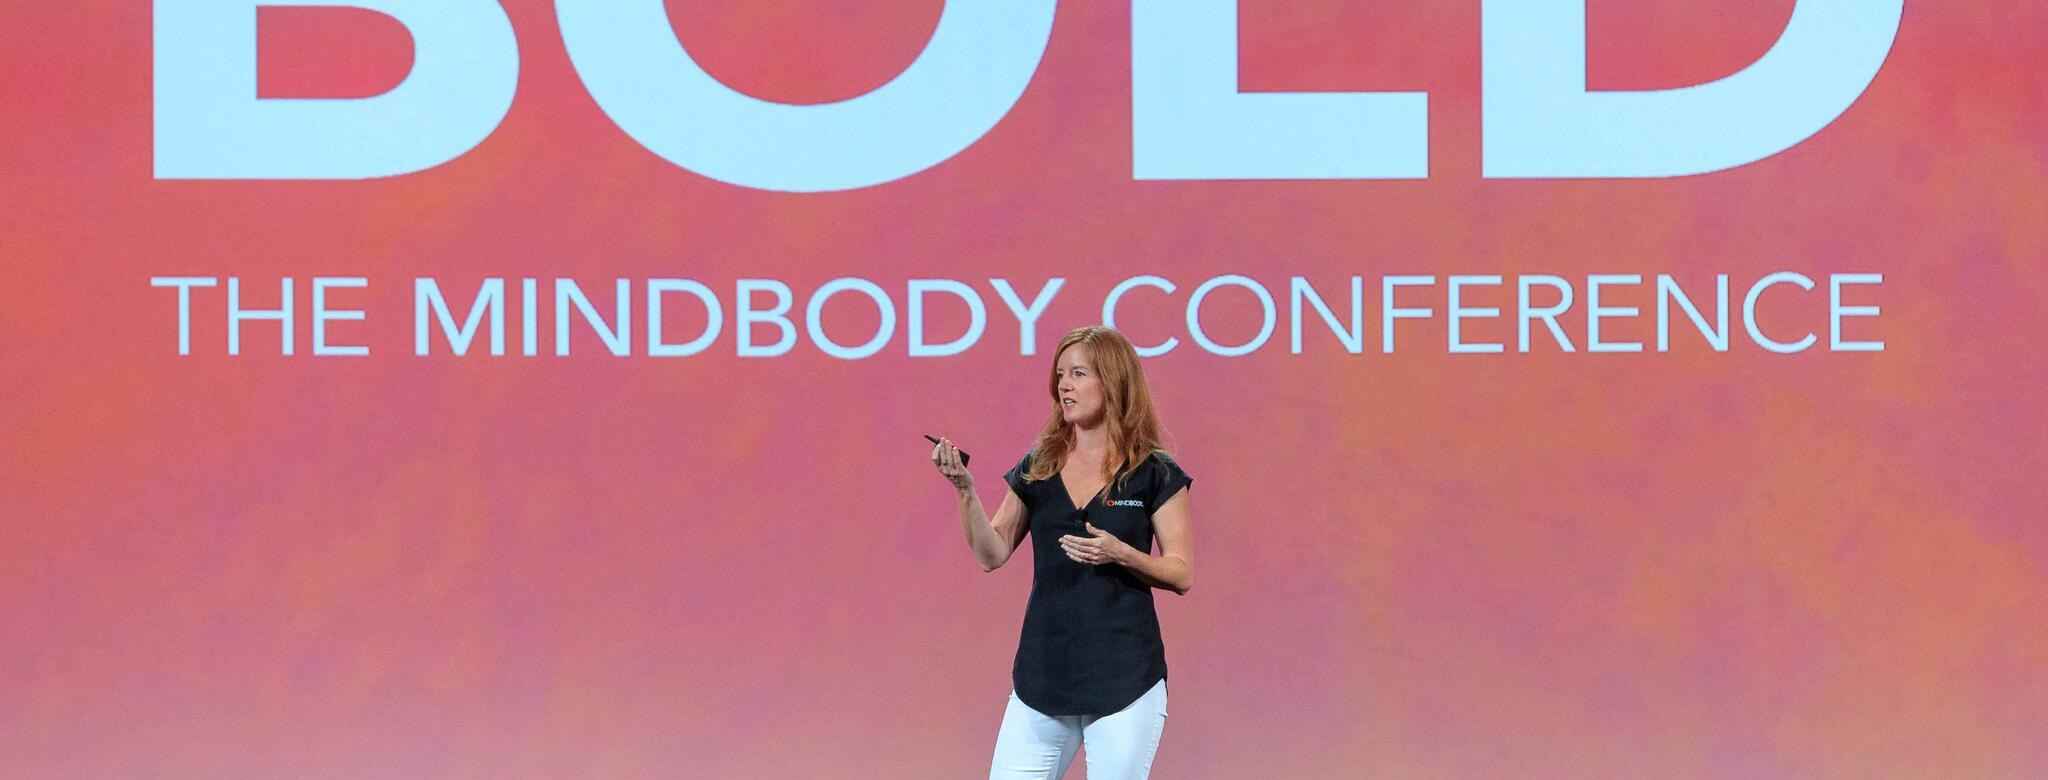 Presenter discussing wellness industry trends at BOLD